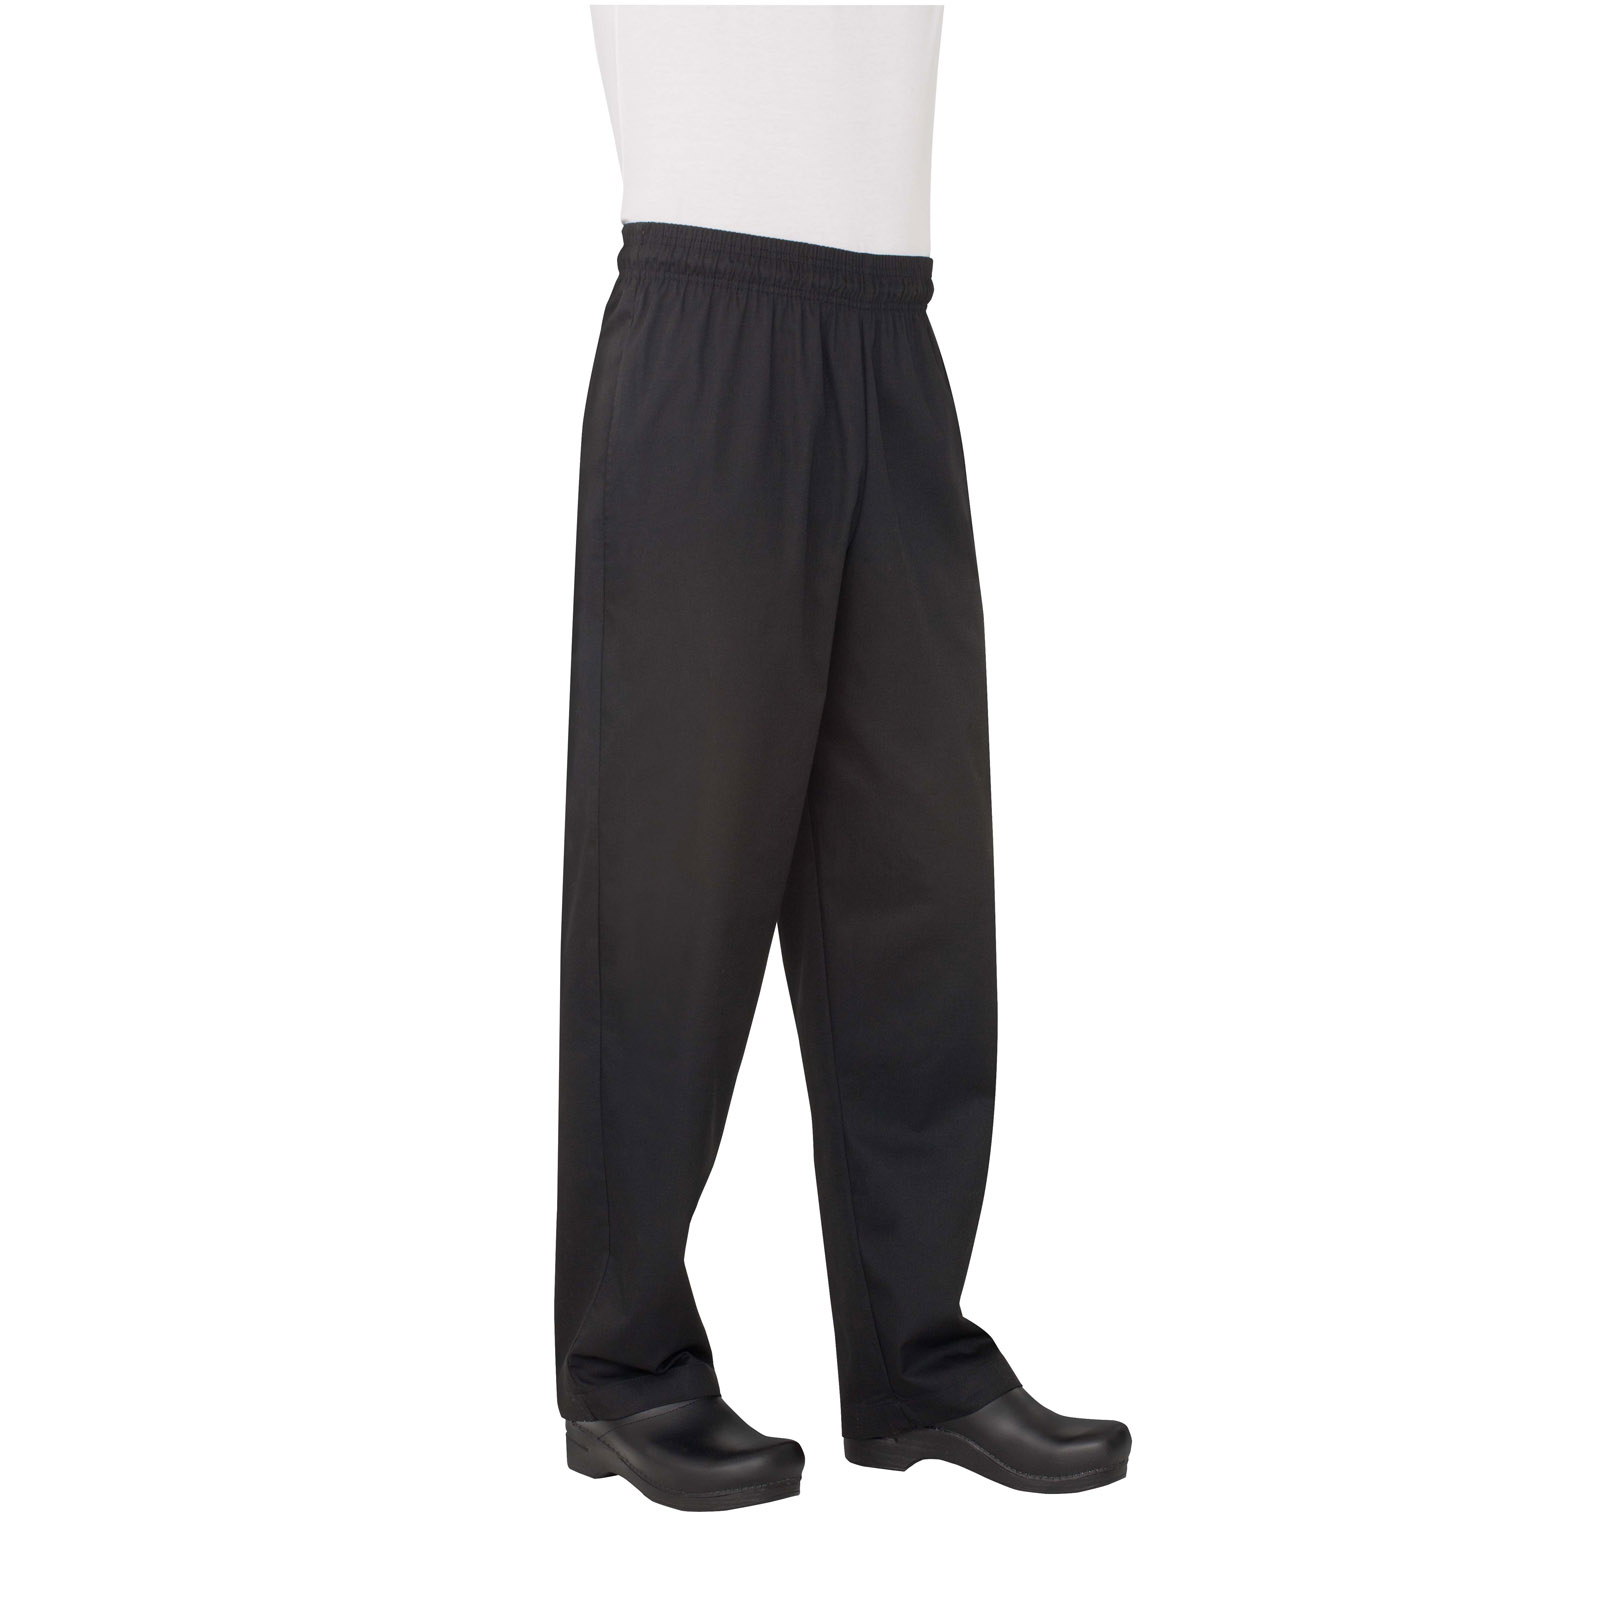 NBBP0003XL Chef Works chef's pants